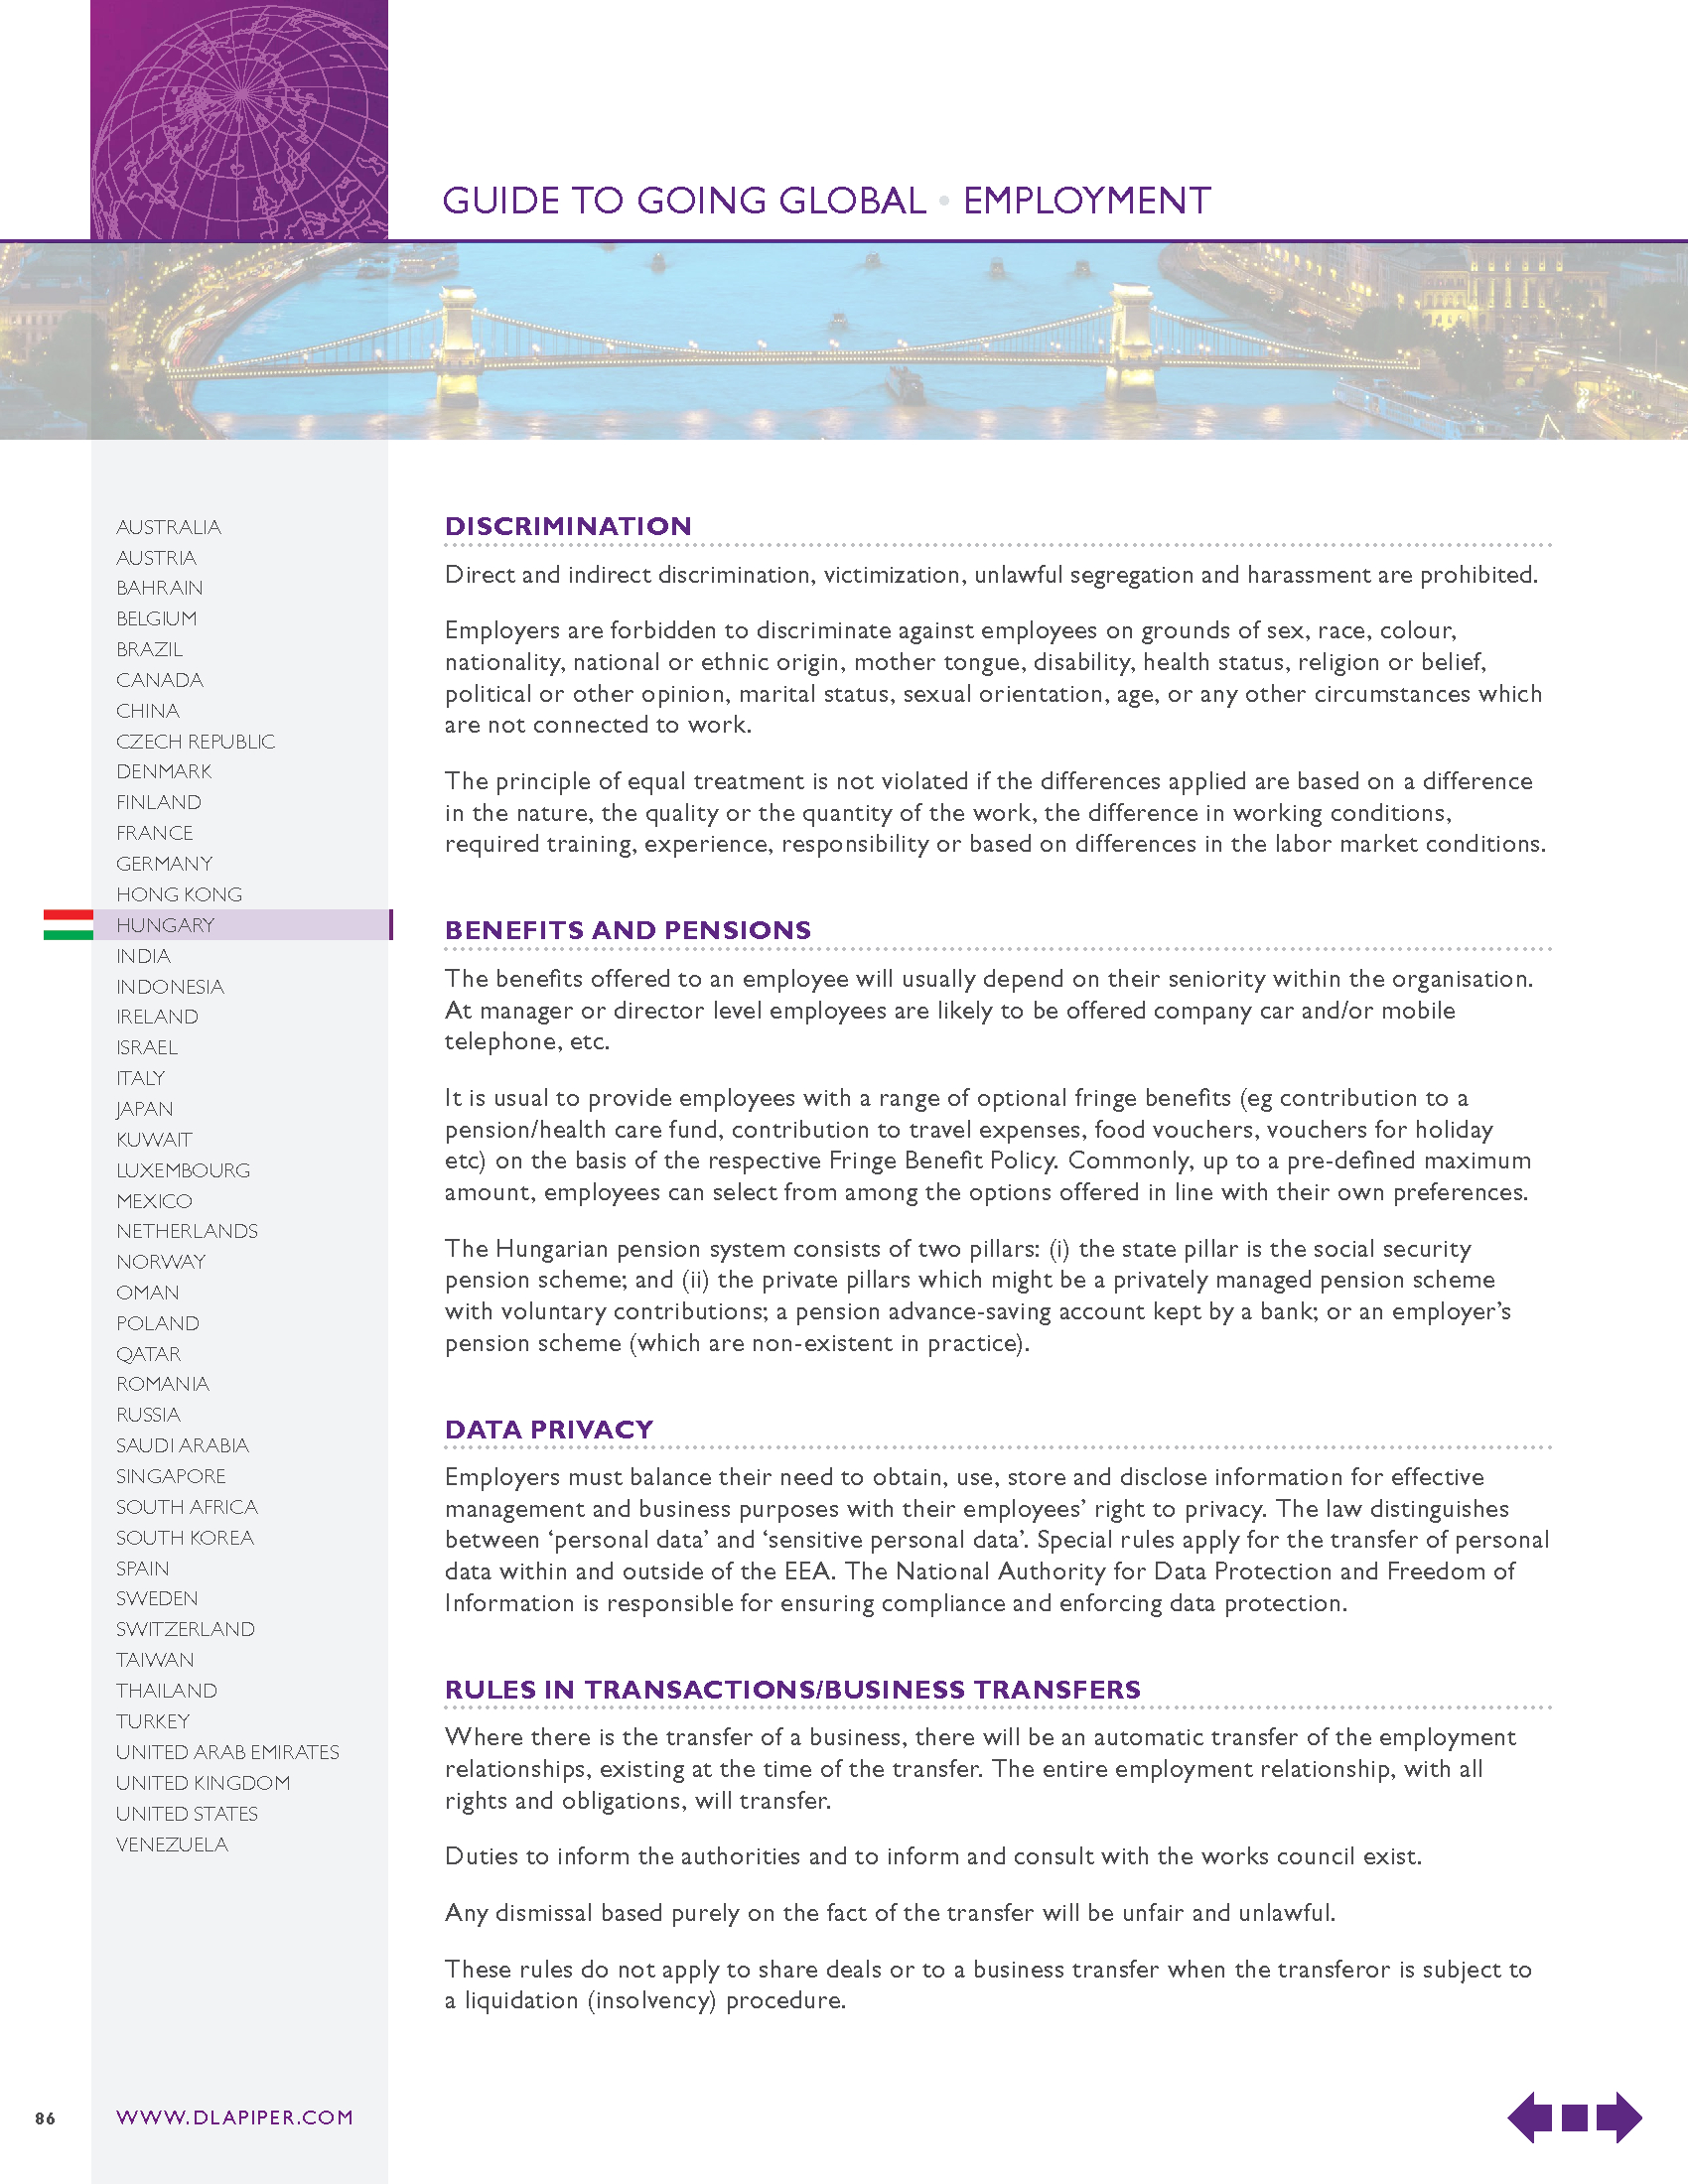 Advisorselect - Guide to Going Global: Employment